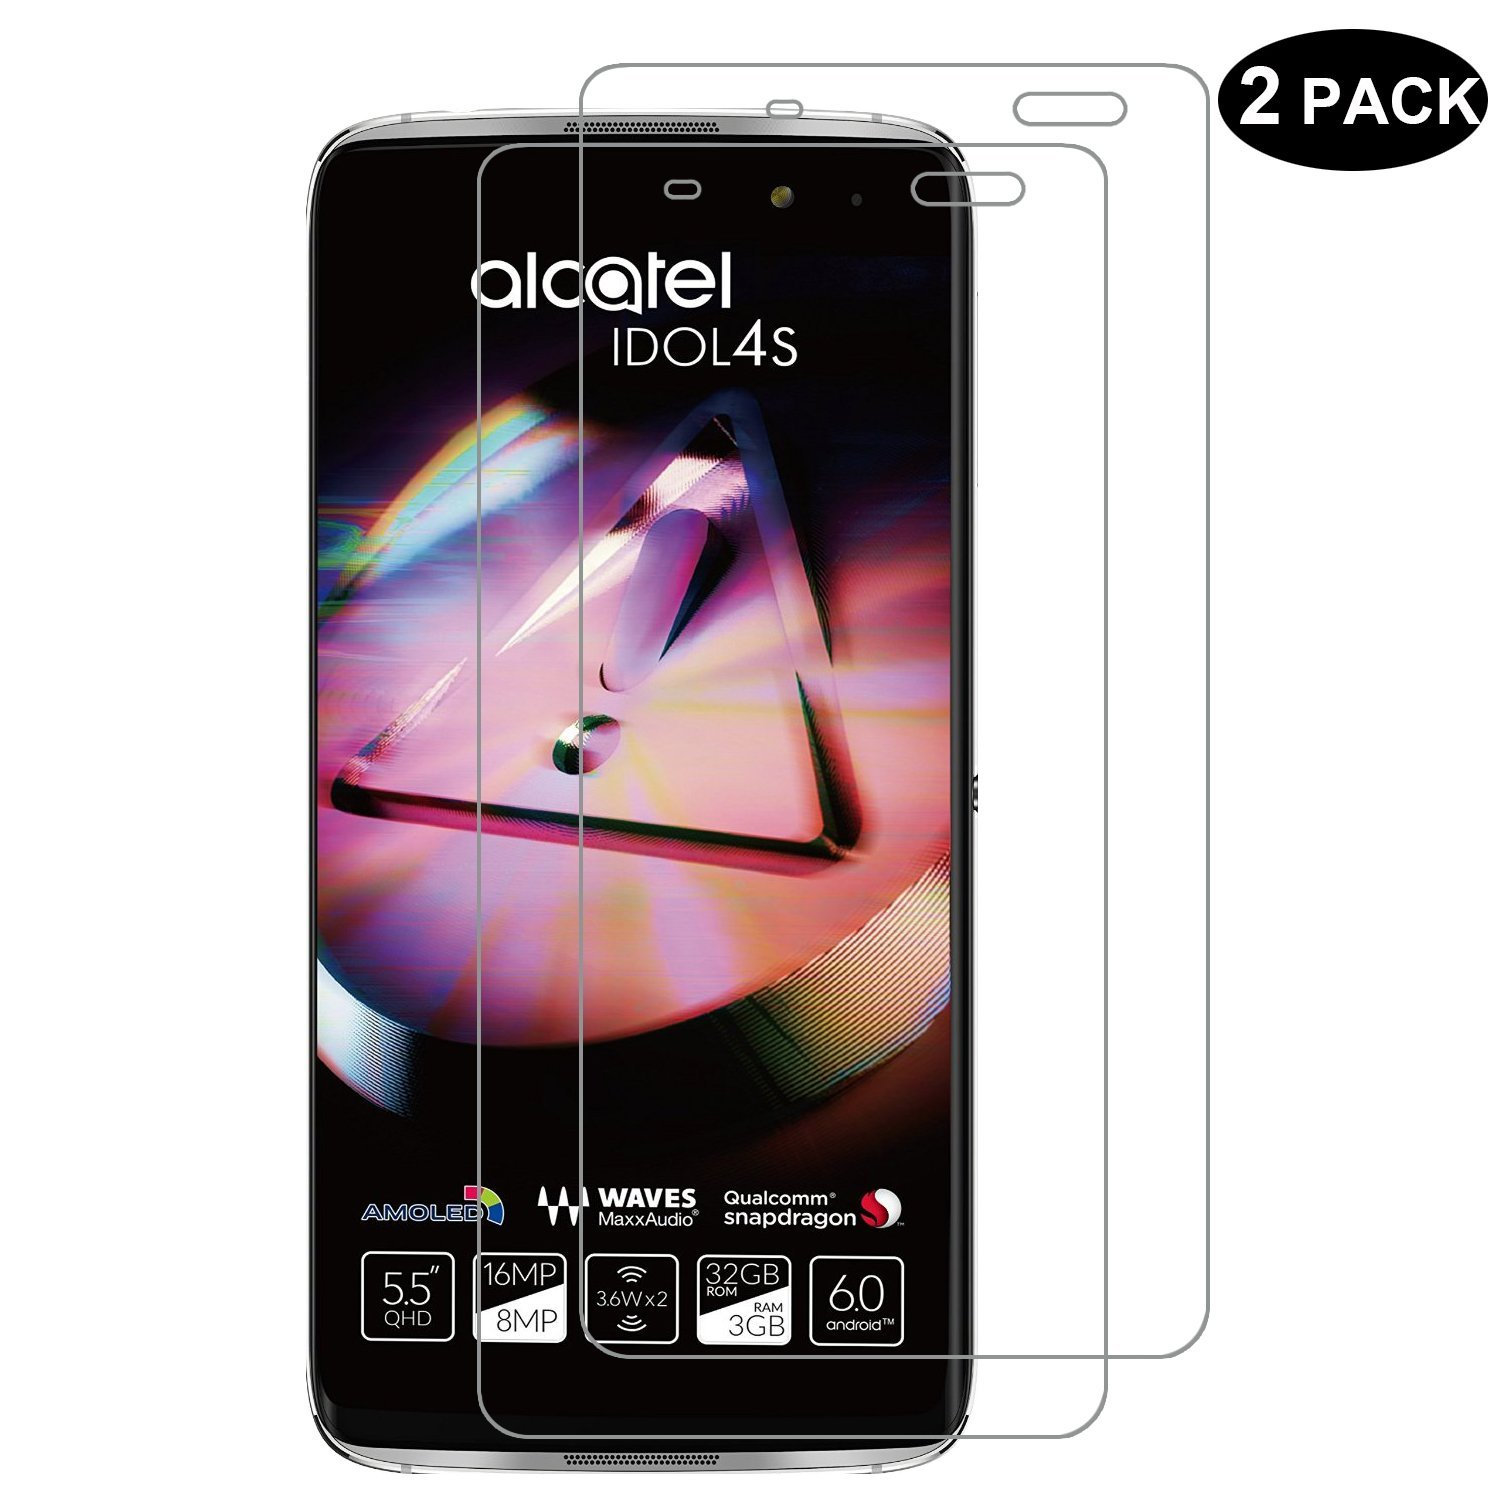 ALCATEL IDOL 4S 6070K [Tempered Glass] Screen Protector - RBEIK [2 Pack] Premium Tempered Glass Screen Protector for ALCATEL IDOL 4S 6070K with 9H Hardness Anti-Scratch Feature